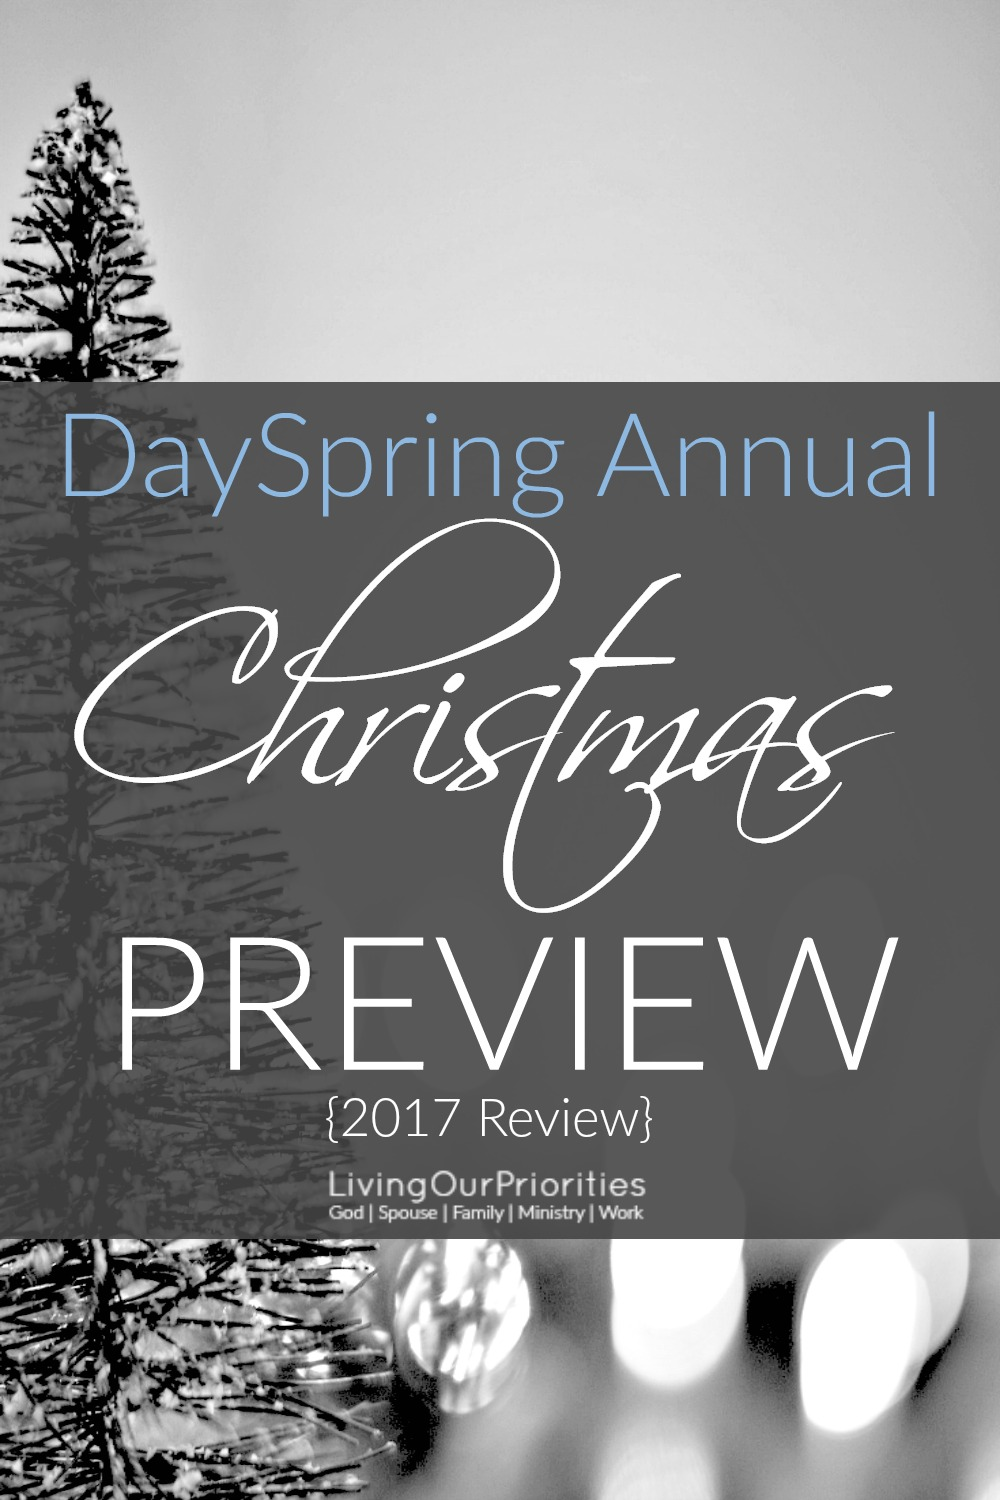 Looking for some inspiration this Christmas season? Check my 2017 Review for the DaySpring Annual Christmas Preview!